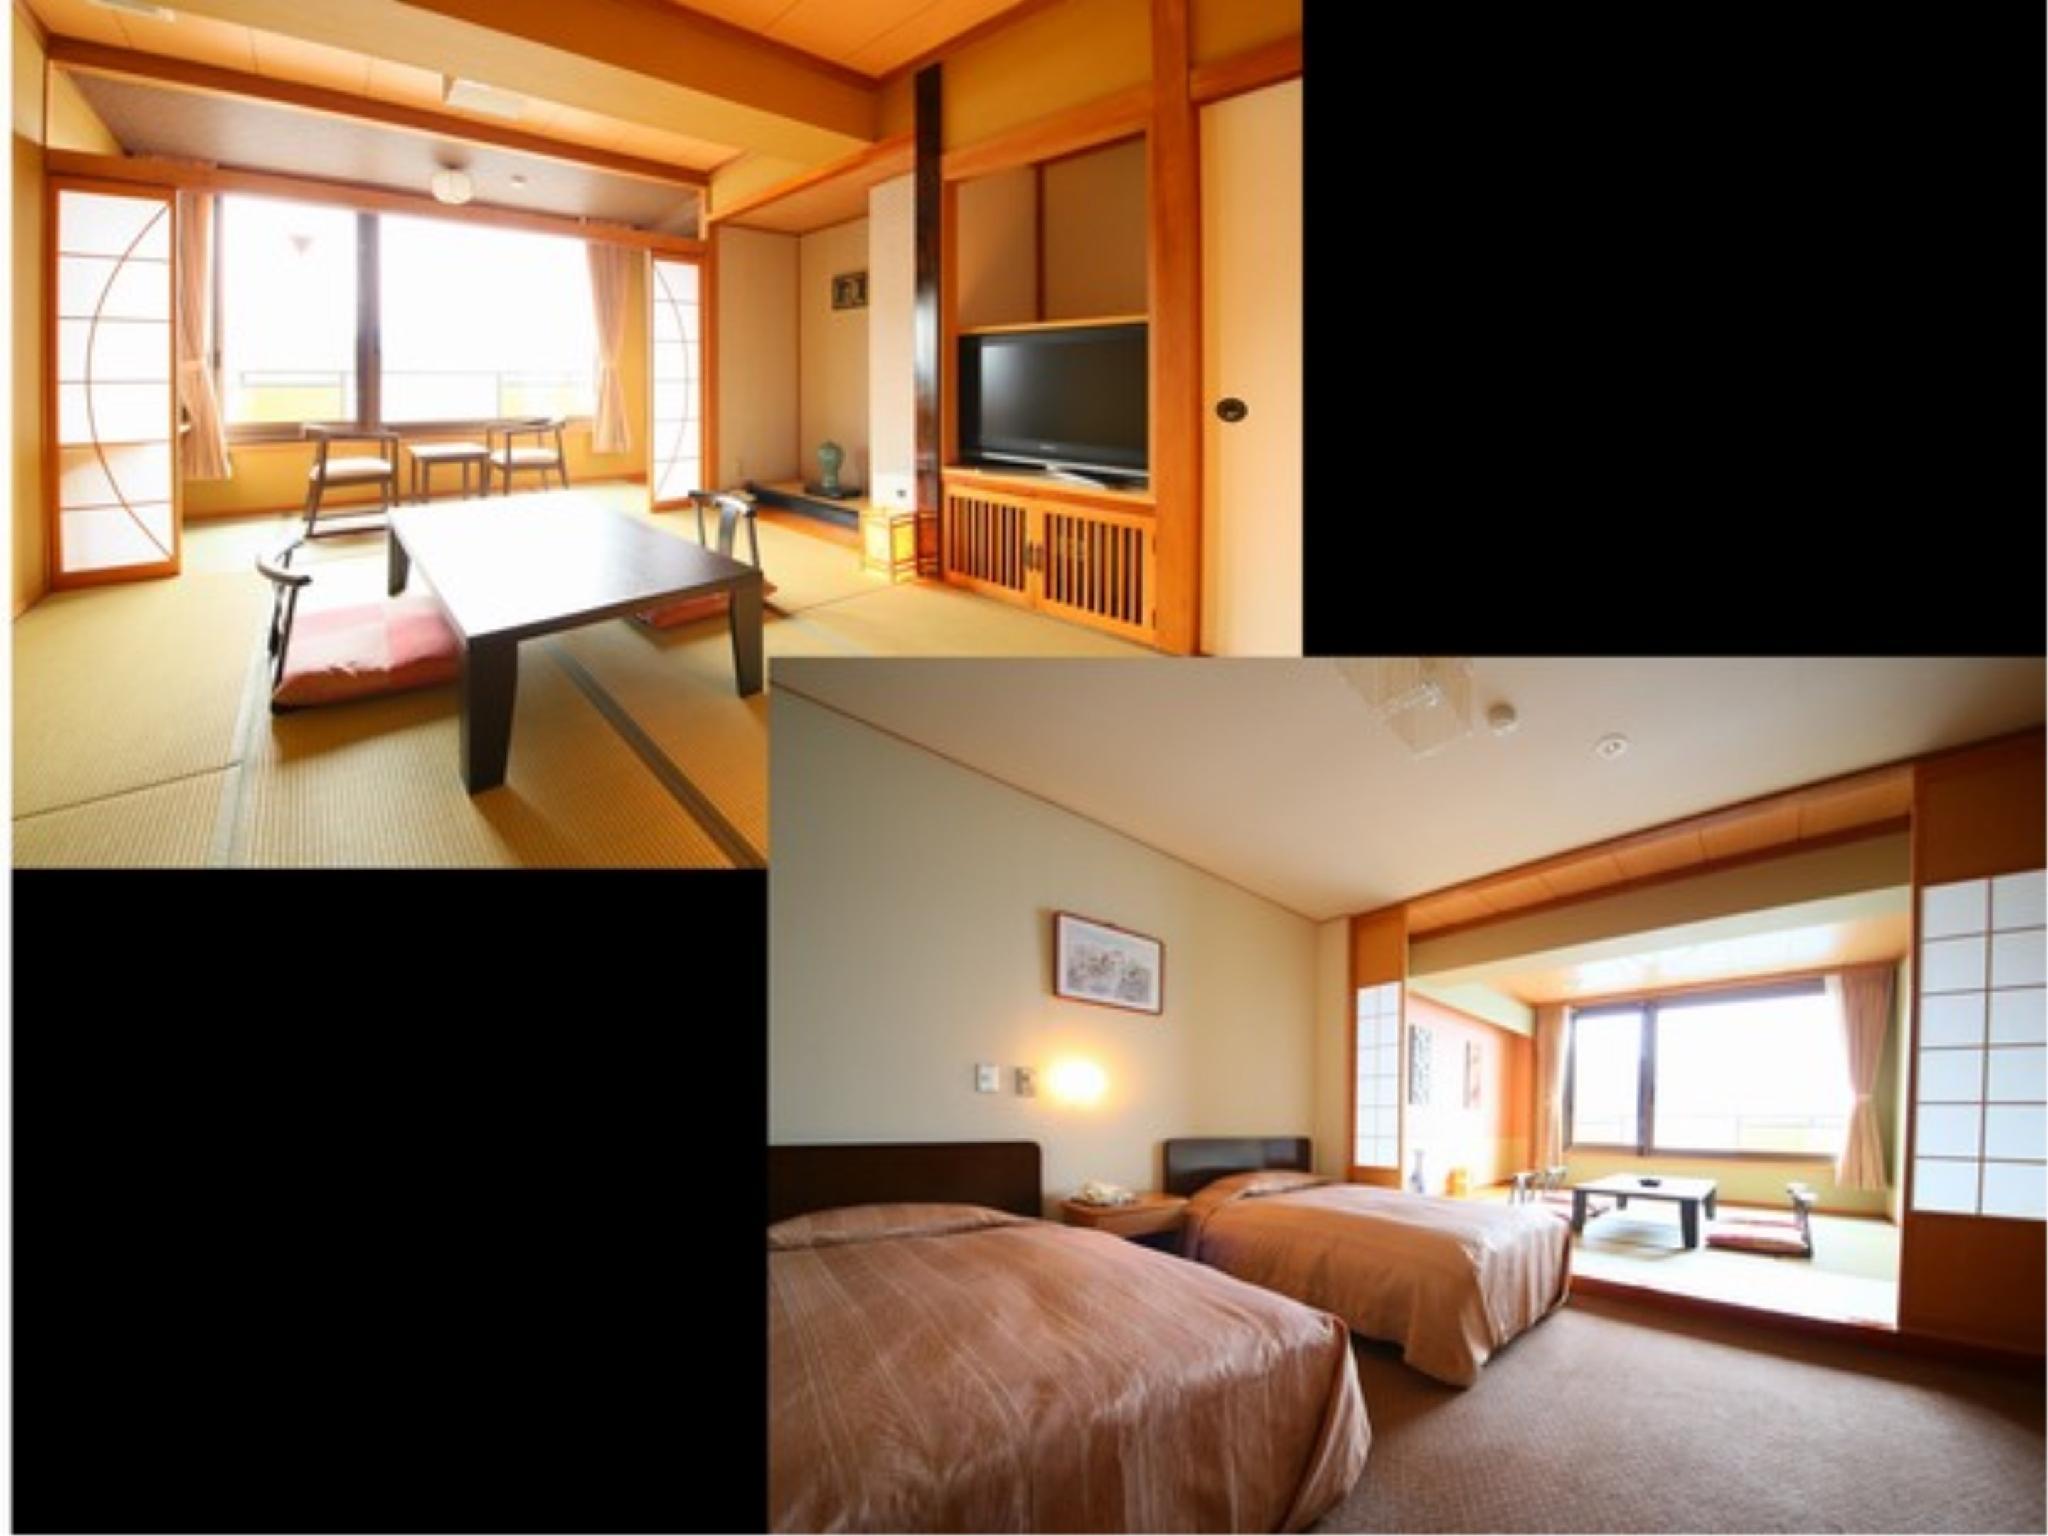 本館 標準和式房或和洋式房 (Standard Japanese-style Room or Japanese/Western-style Room (Main Building))